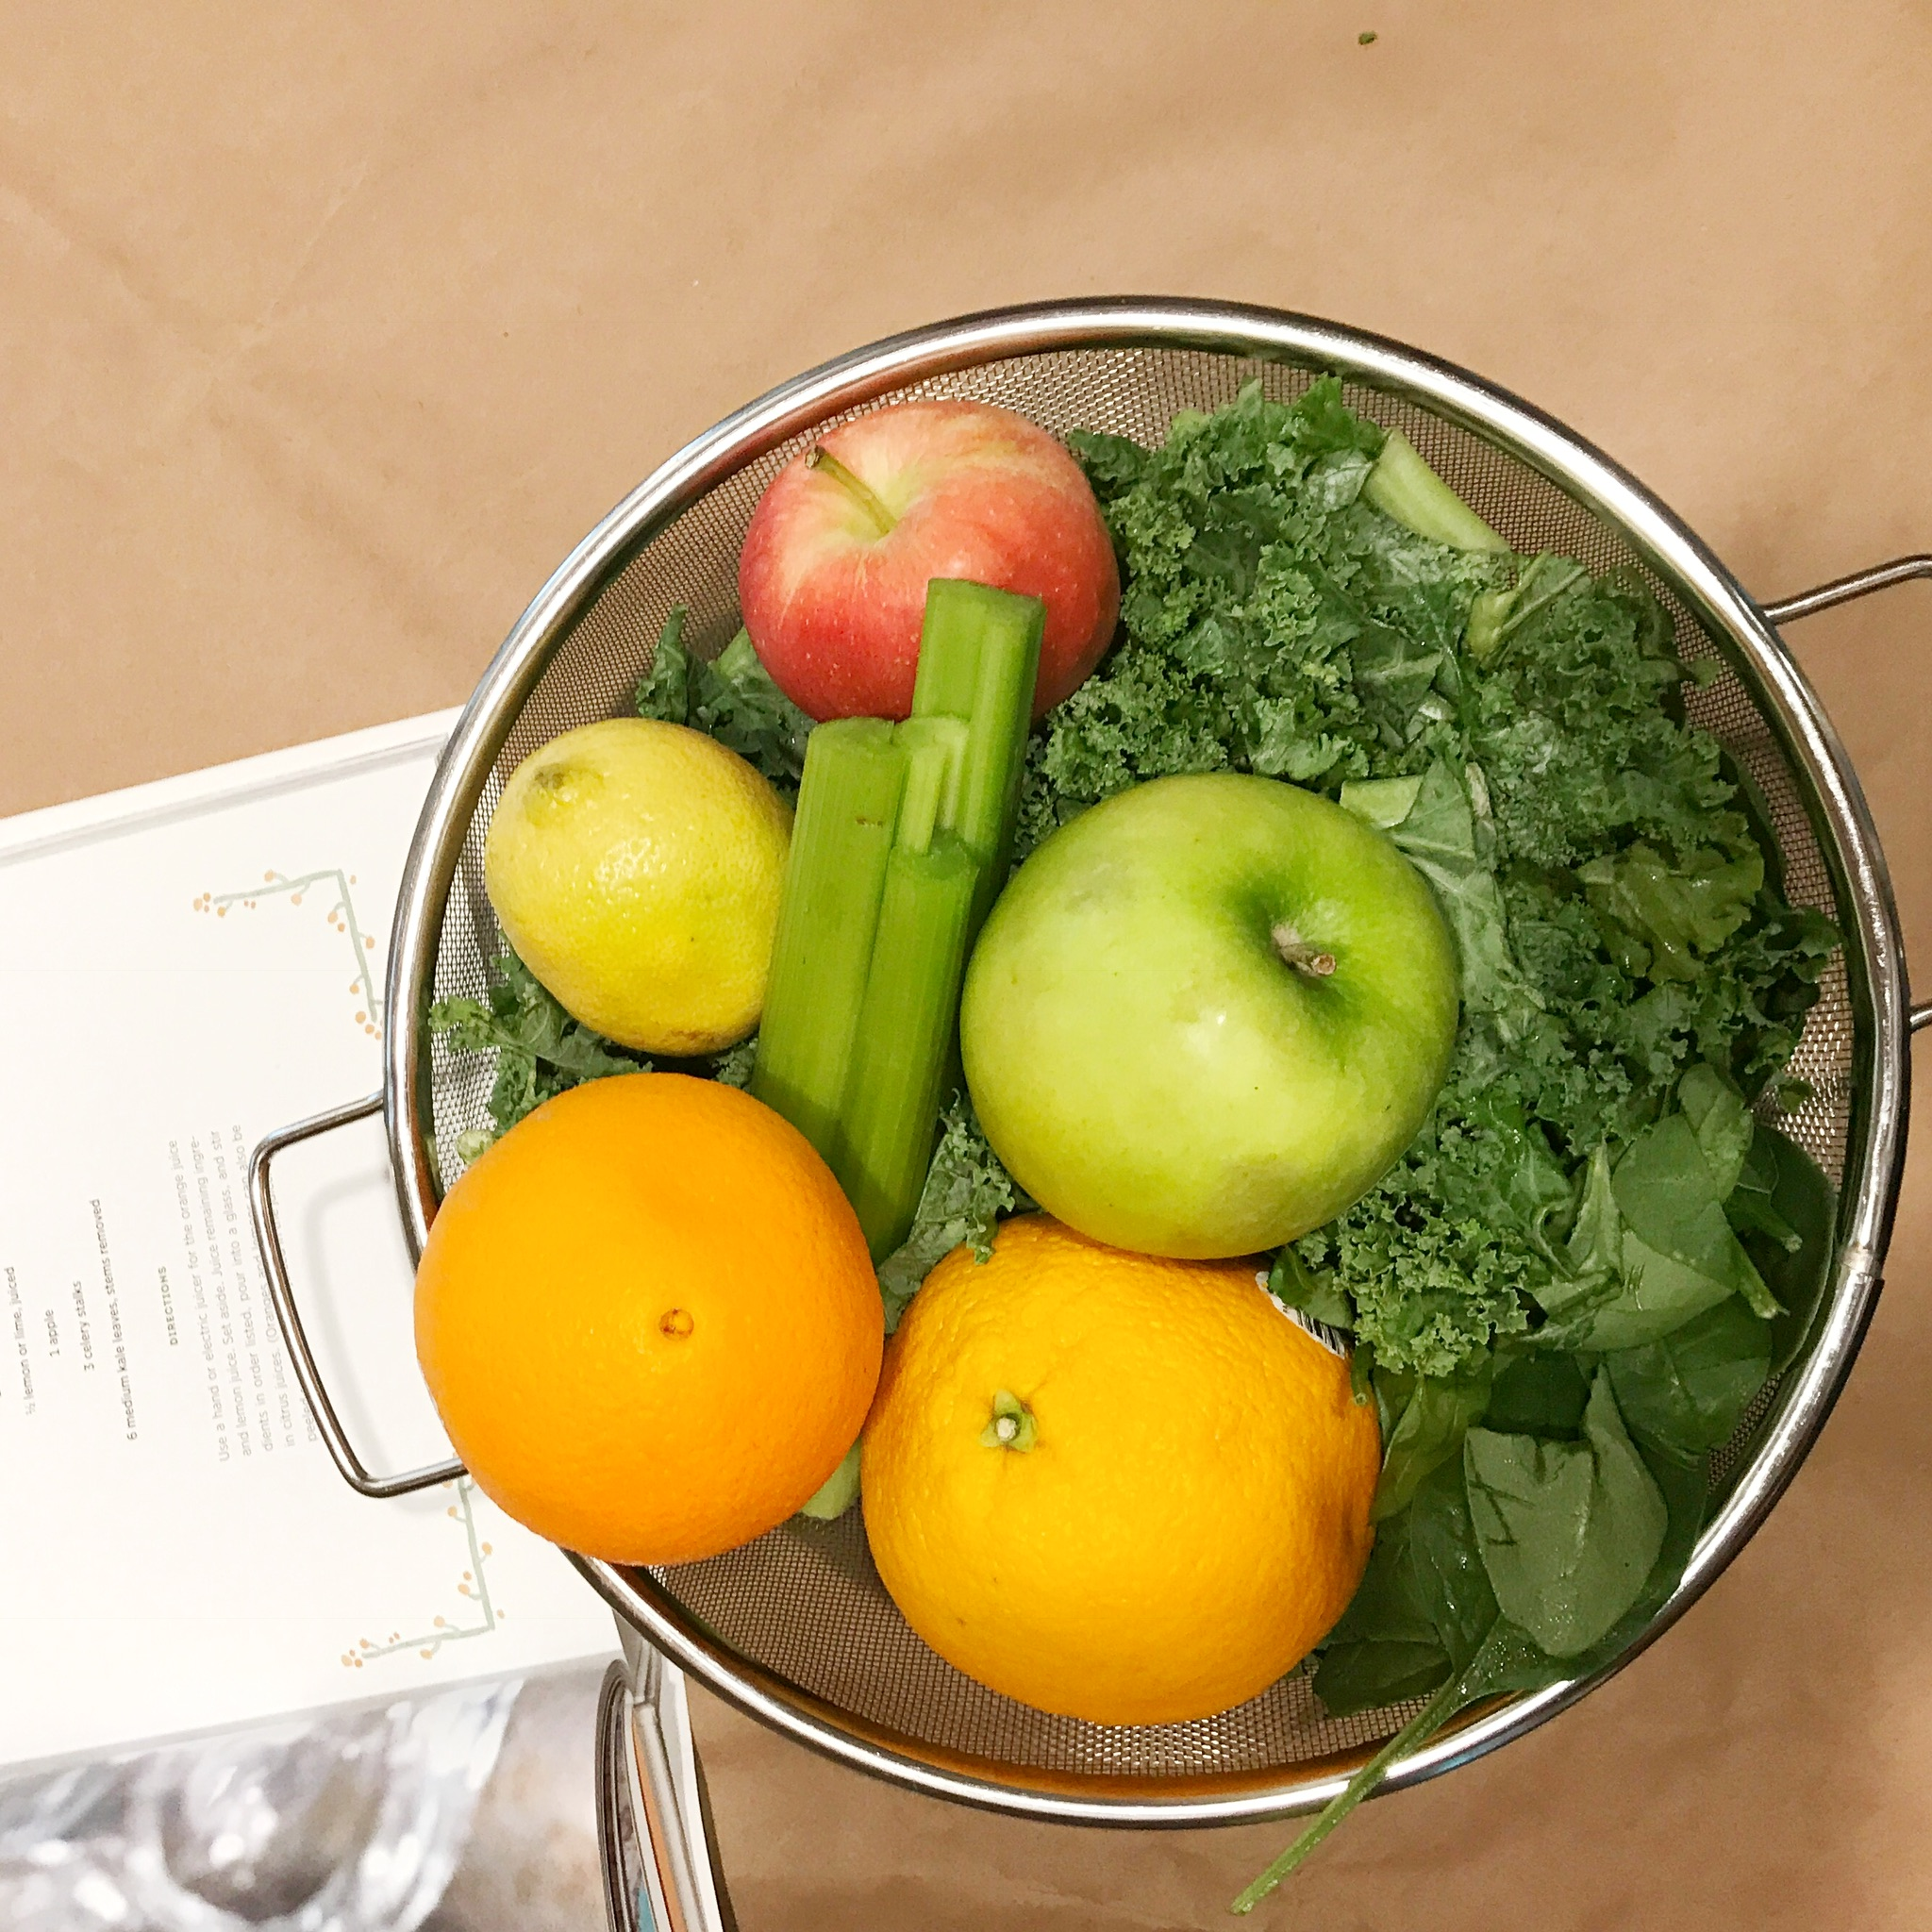 Our Recipe - Pineapple, kiwi, green apple, orange and/or lemon, celery, spinach, kale/collards.